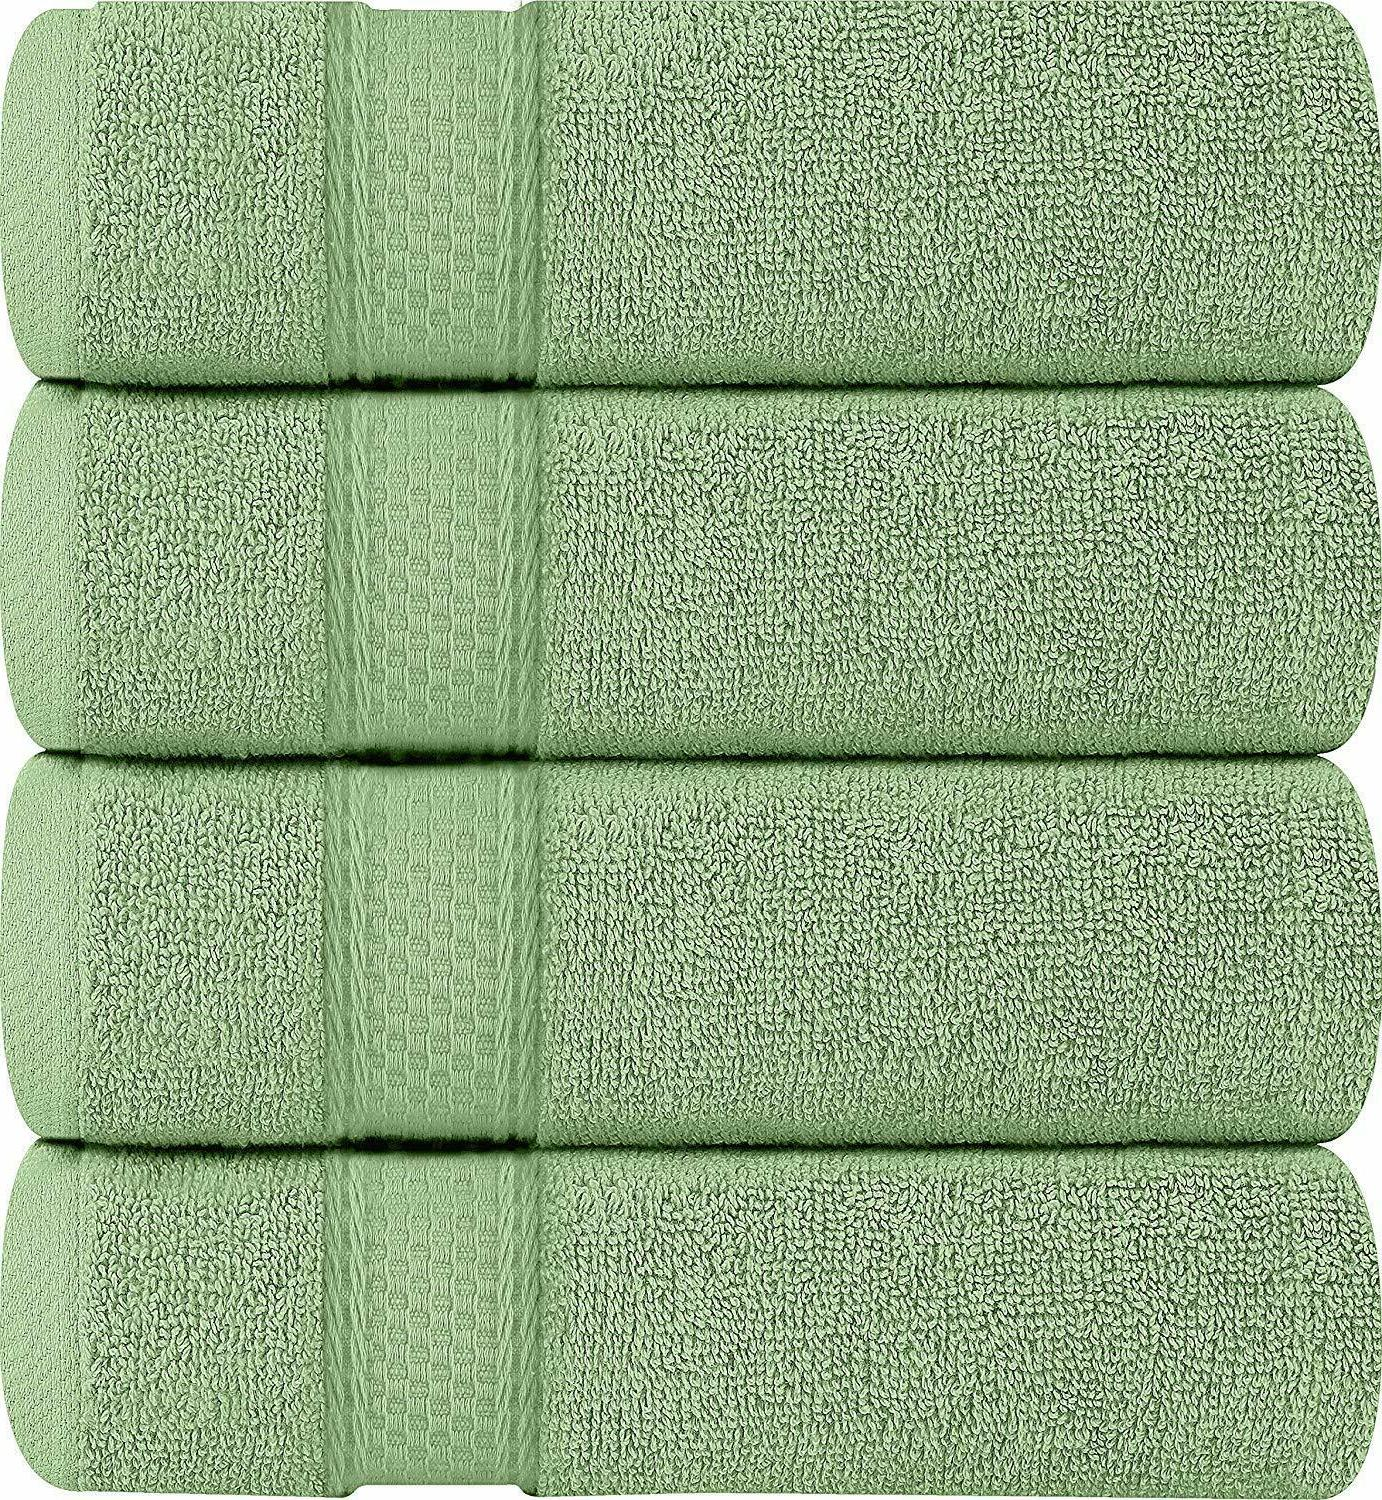 Cotton 27x54 700 GSM Also in Lot Utopia Towels